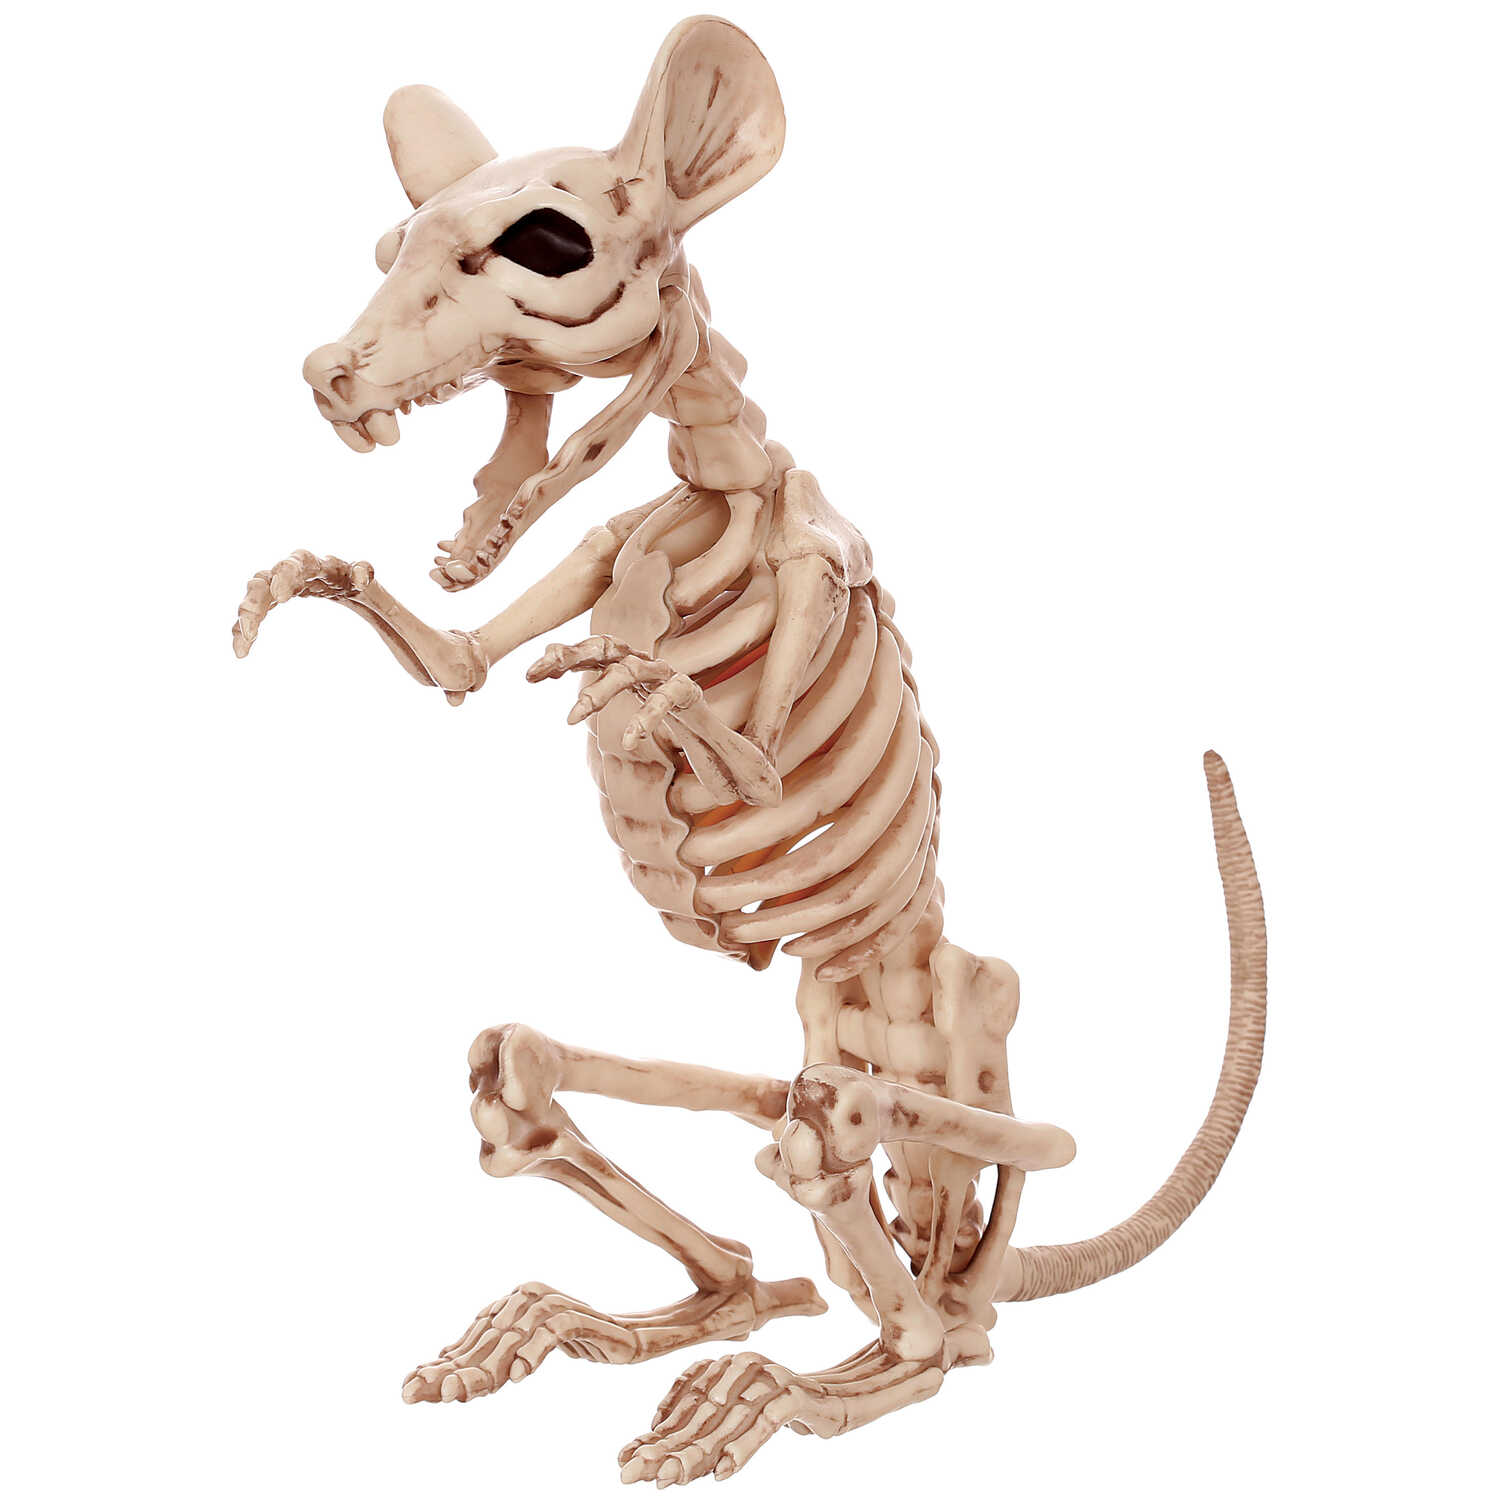 Seasons USA  Skeleton Rat  Halloween Decoration  11.5 in. H x 4.5 in. W x 8 in. L 1 each